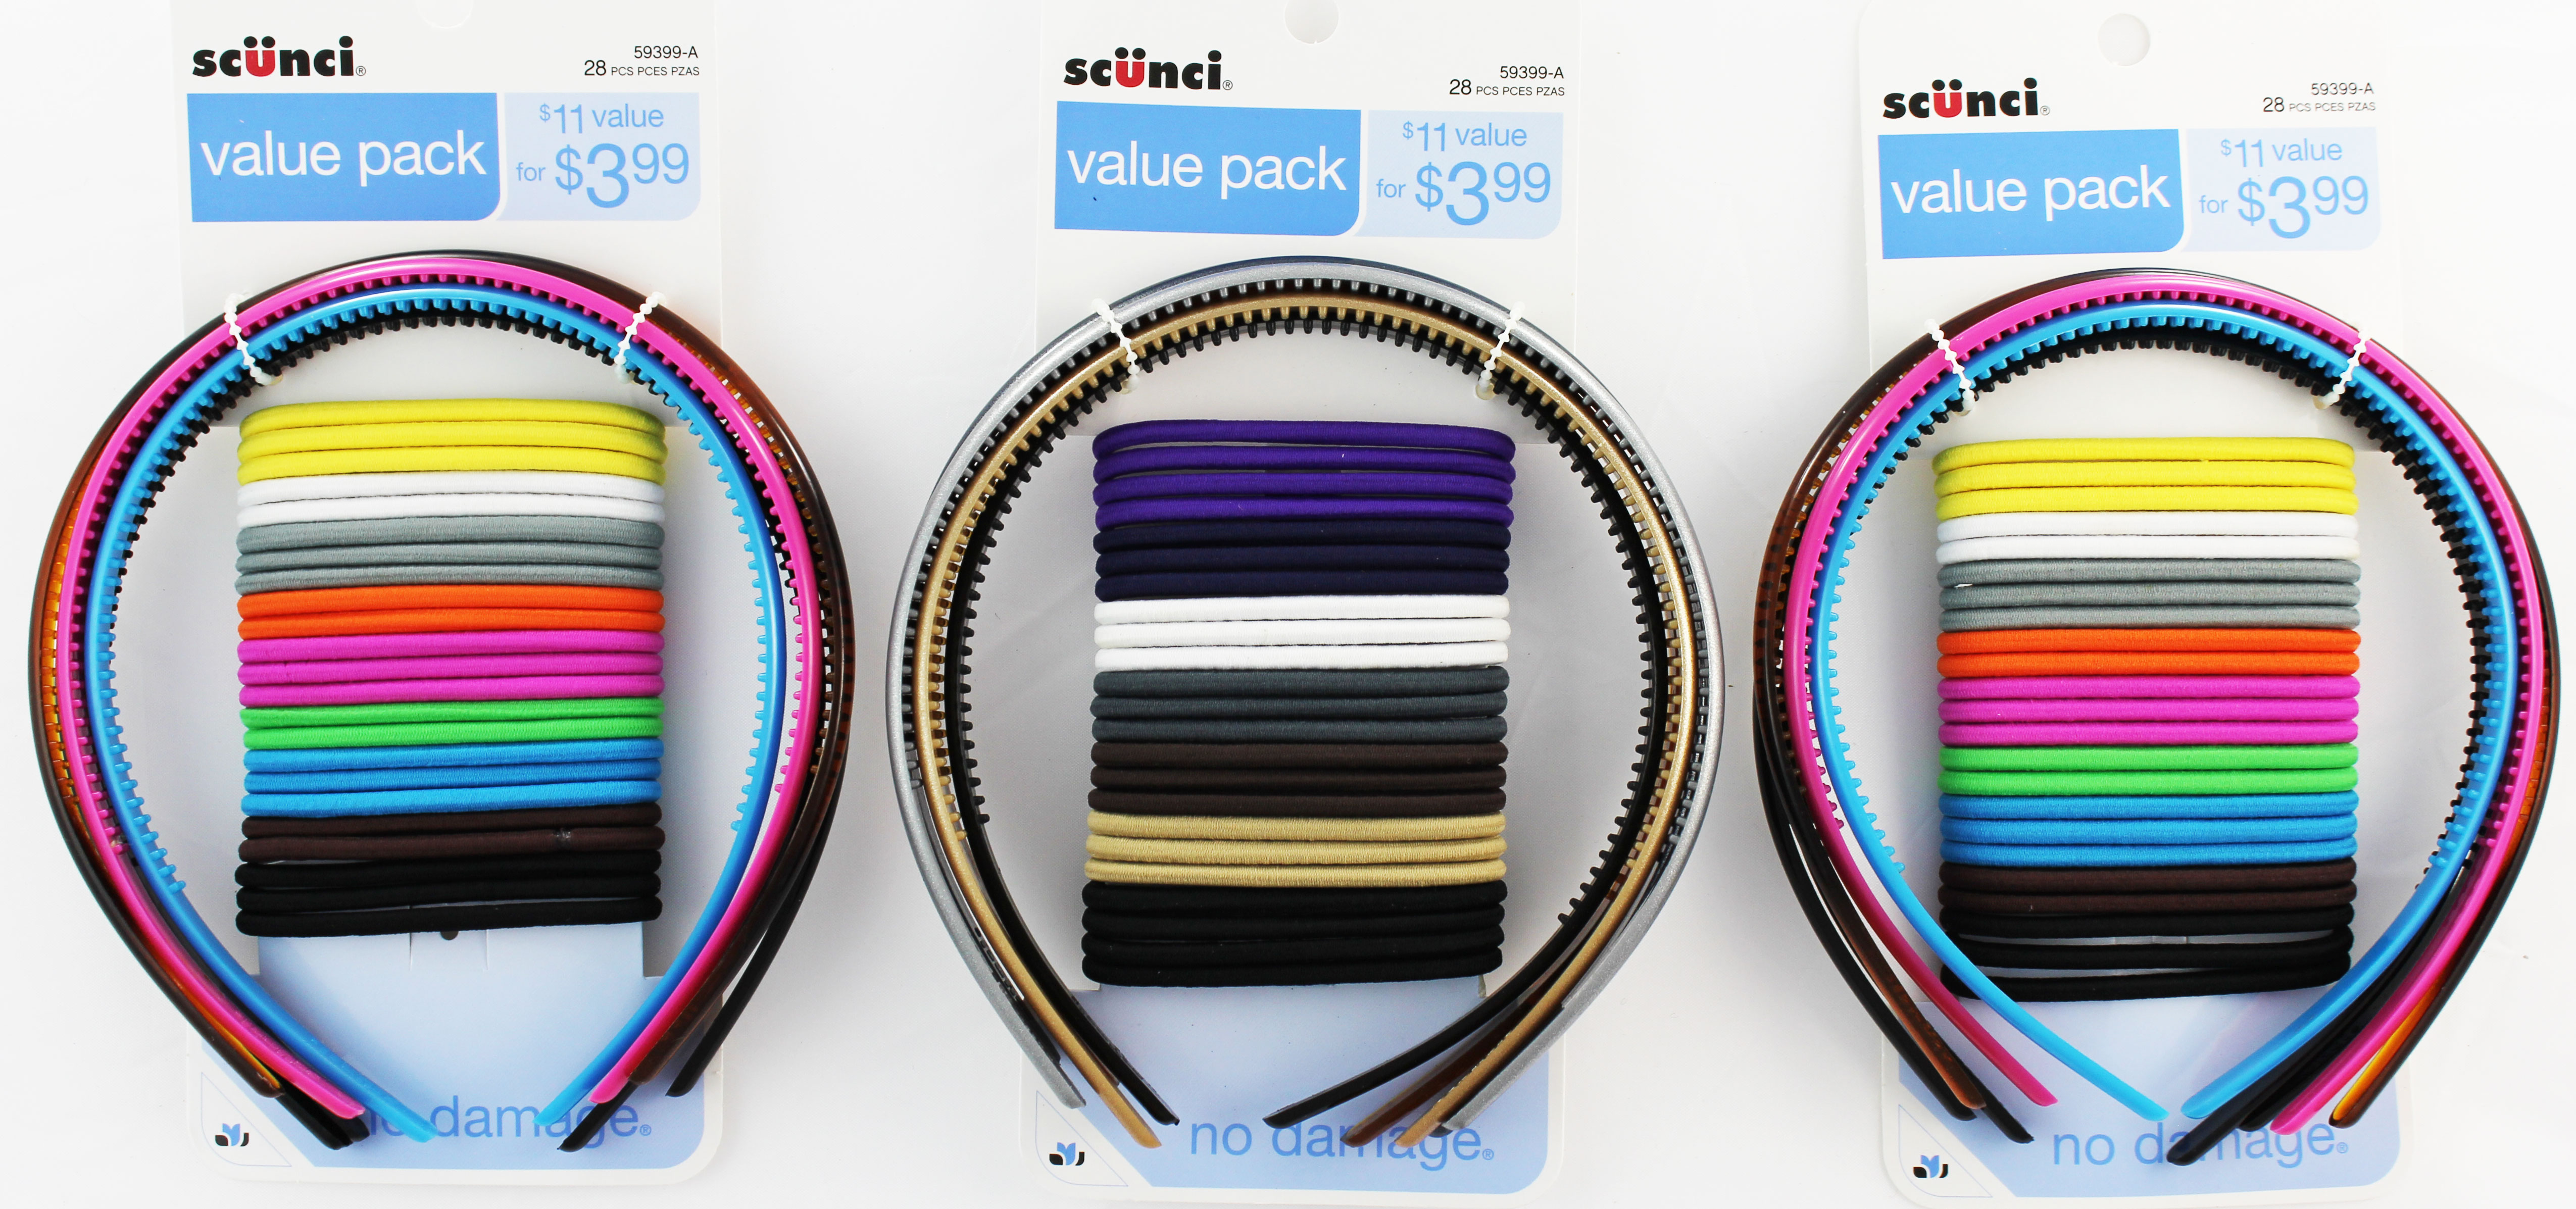 Scunci Value Pack No Damage Headband/Elastic Multi-Pack 28ct